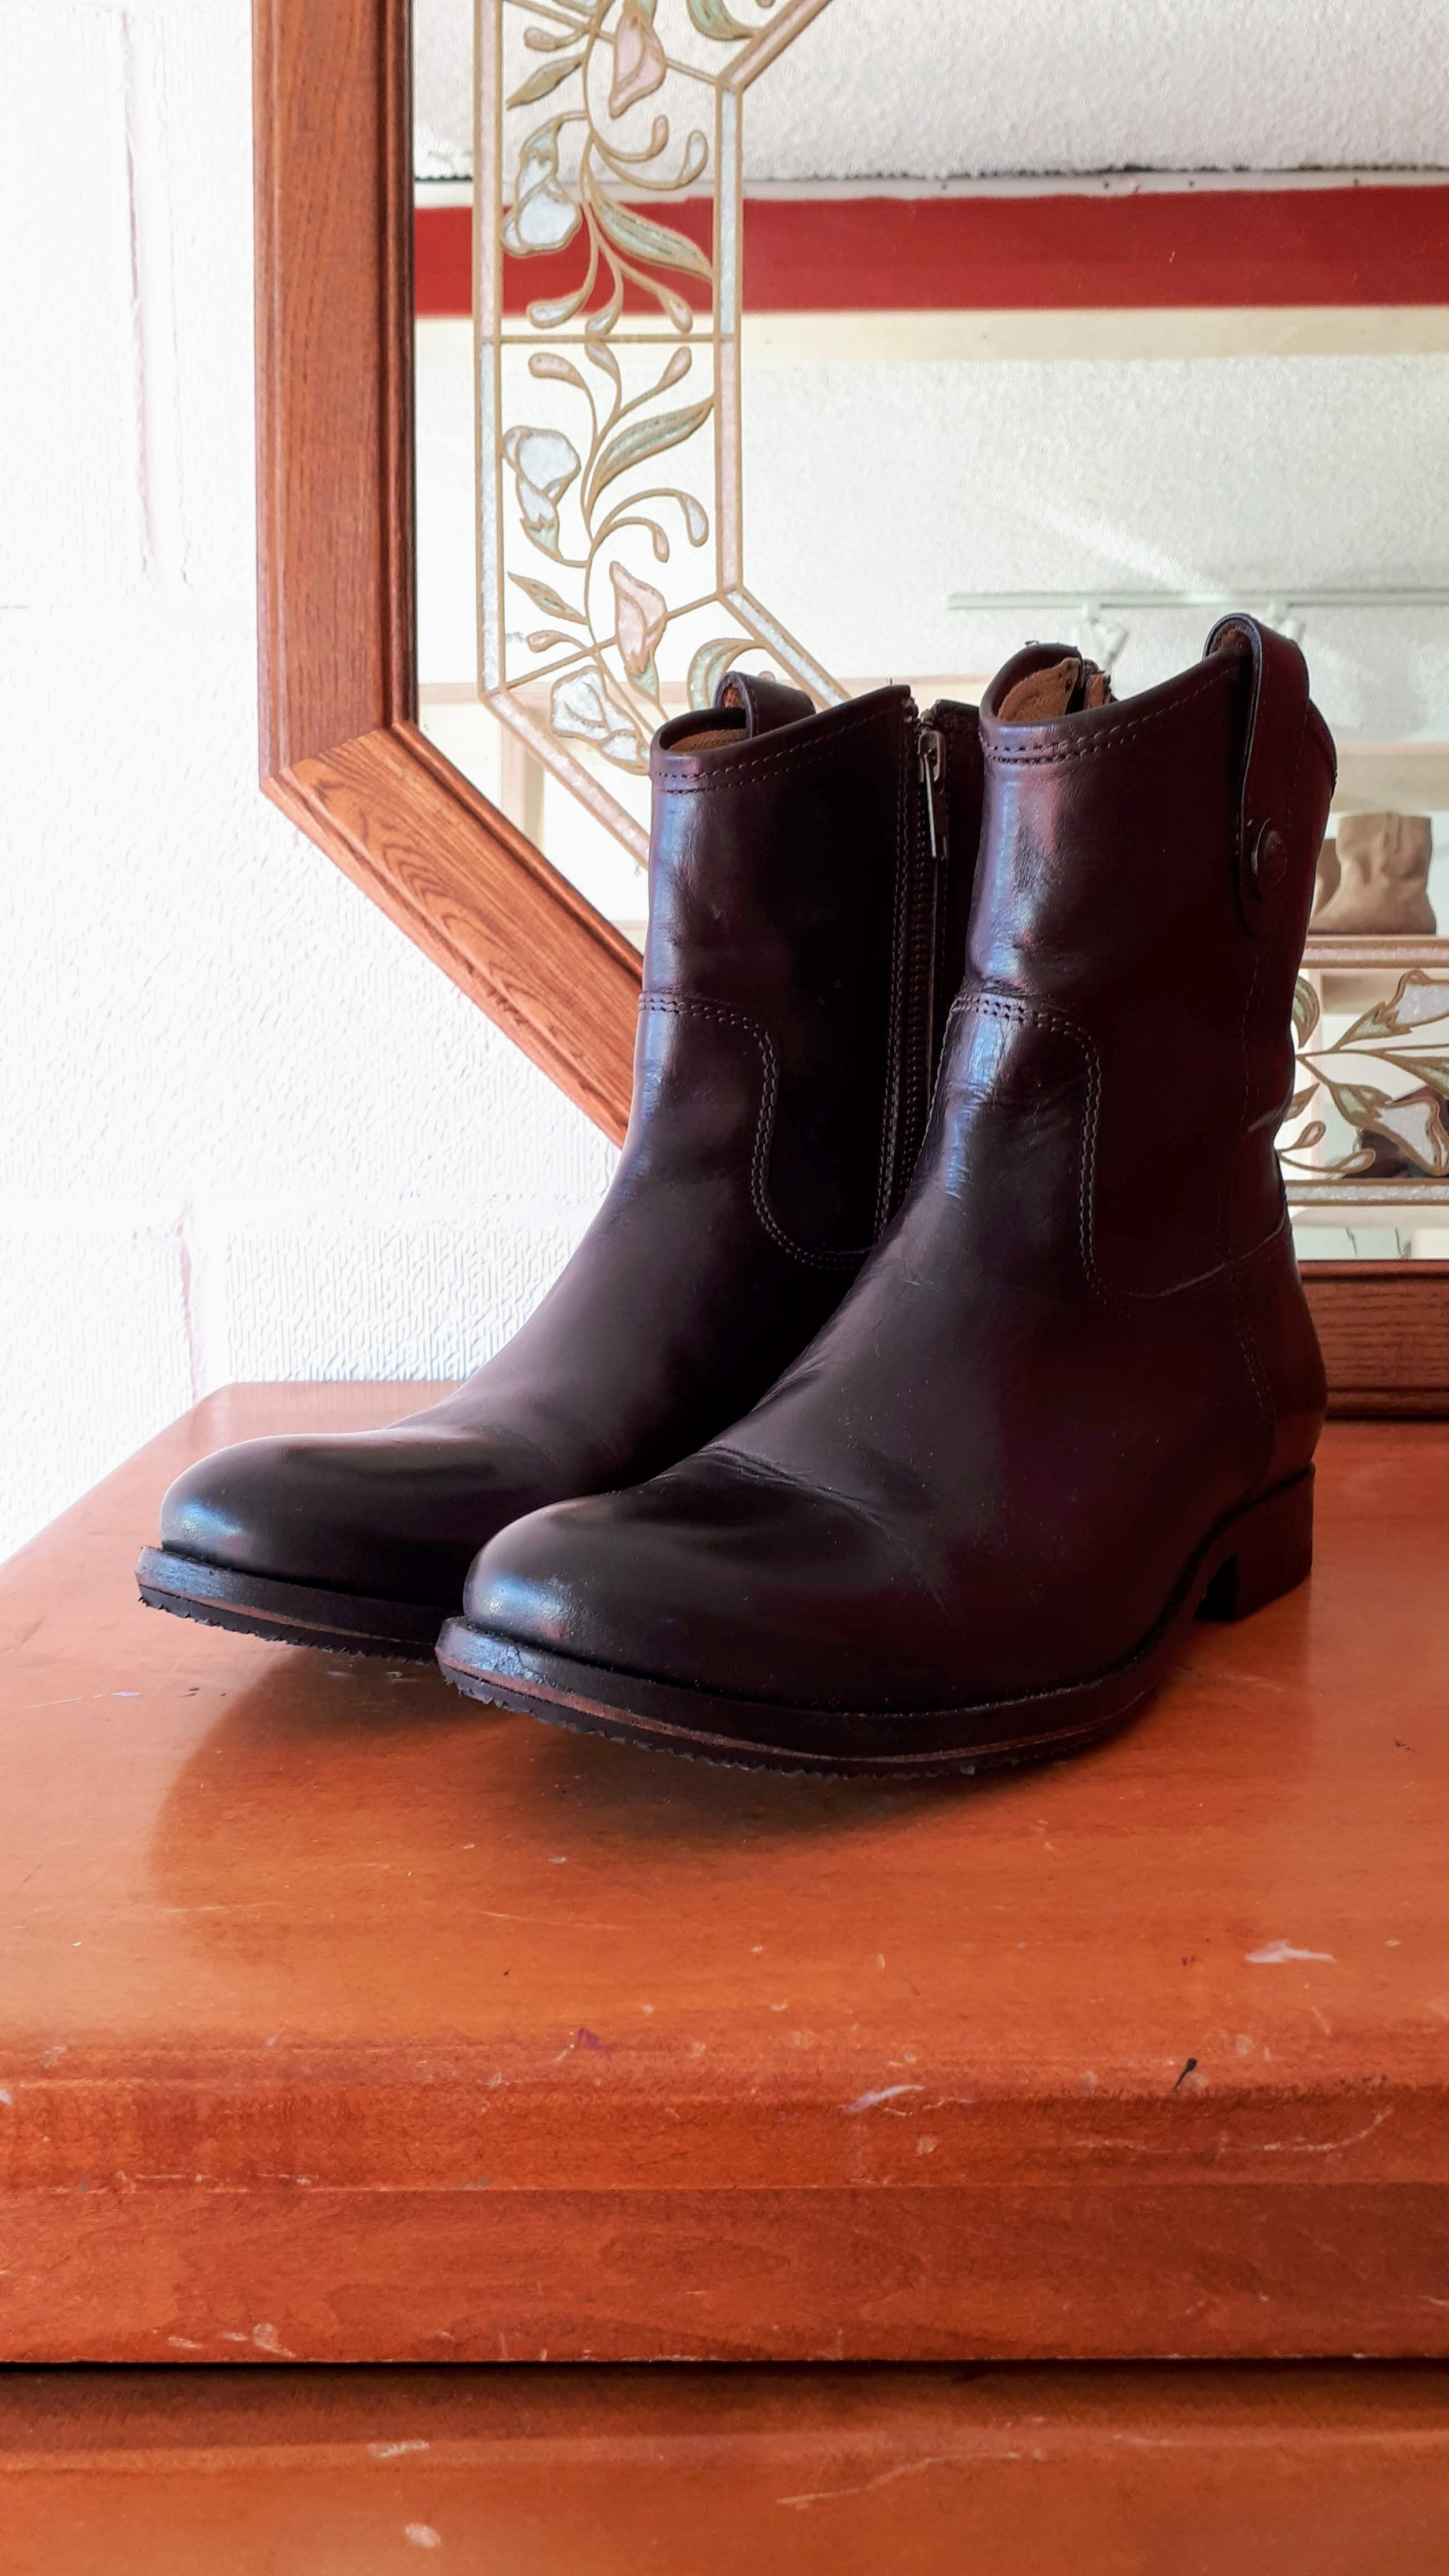 Frye boots; S8, $175